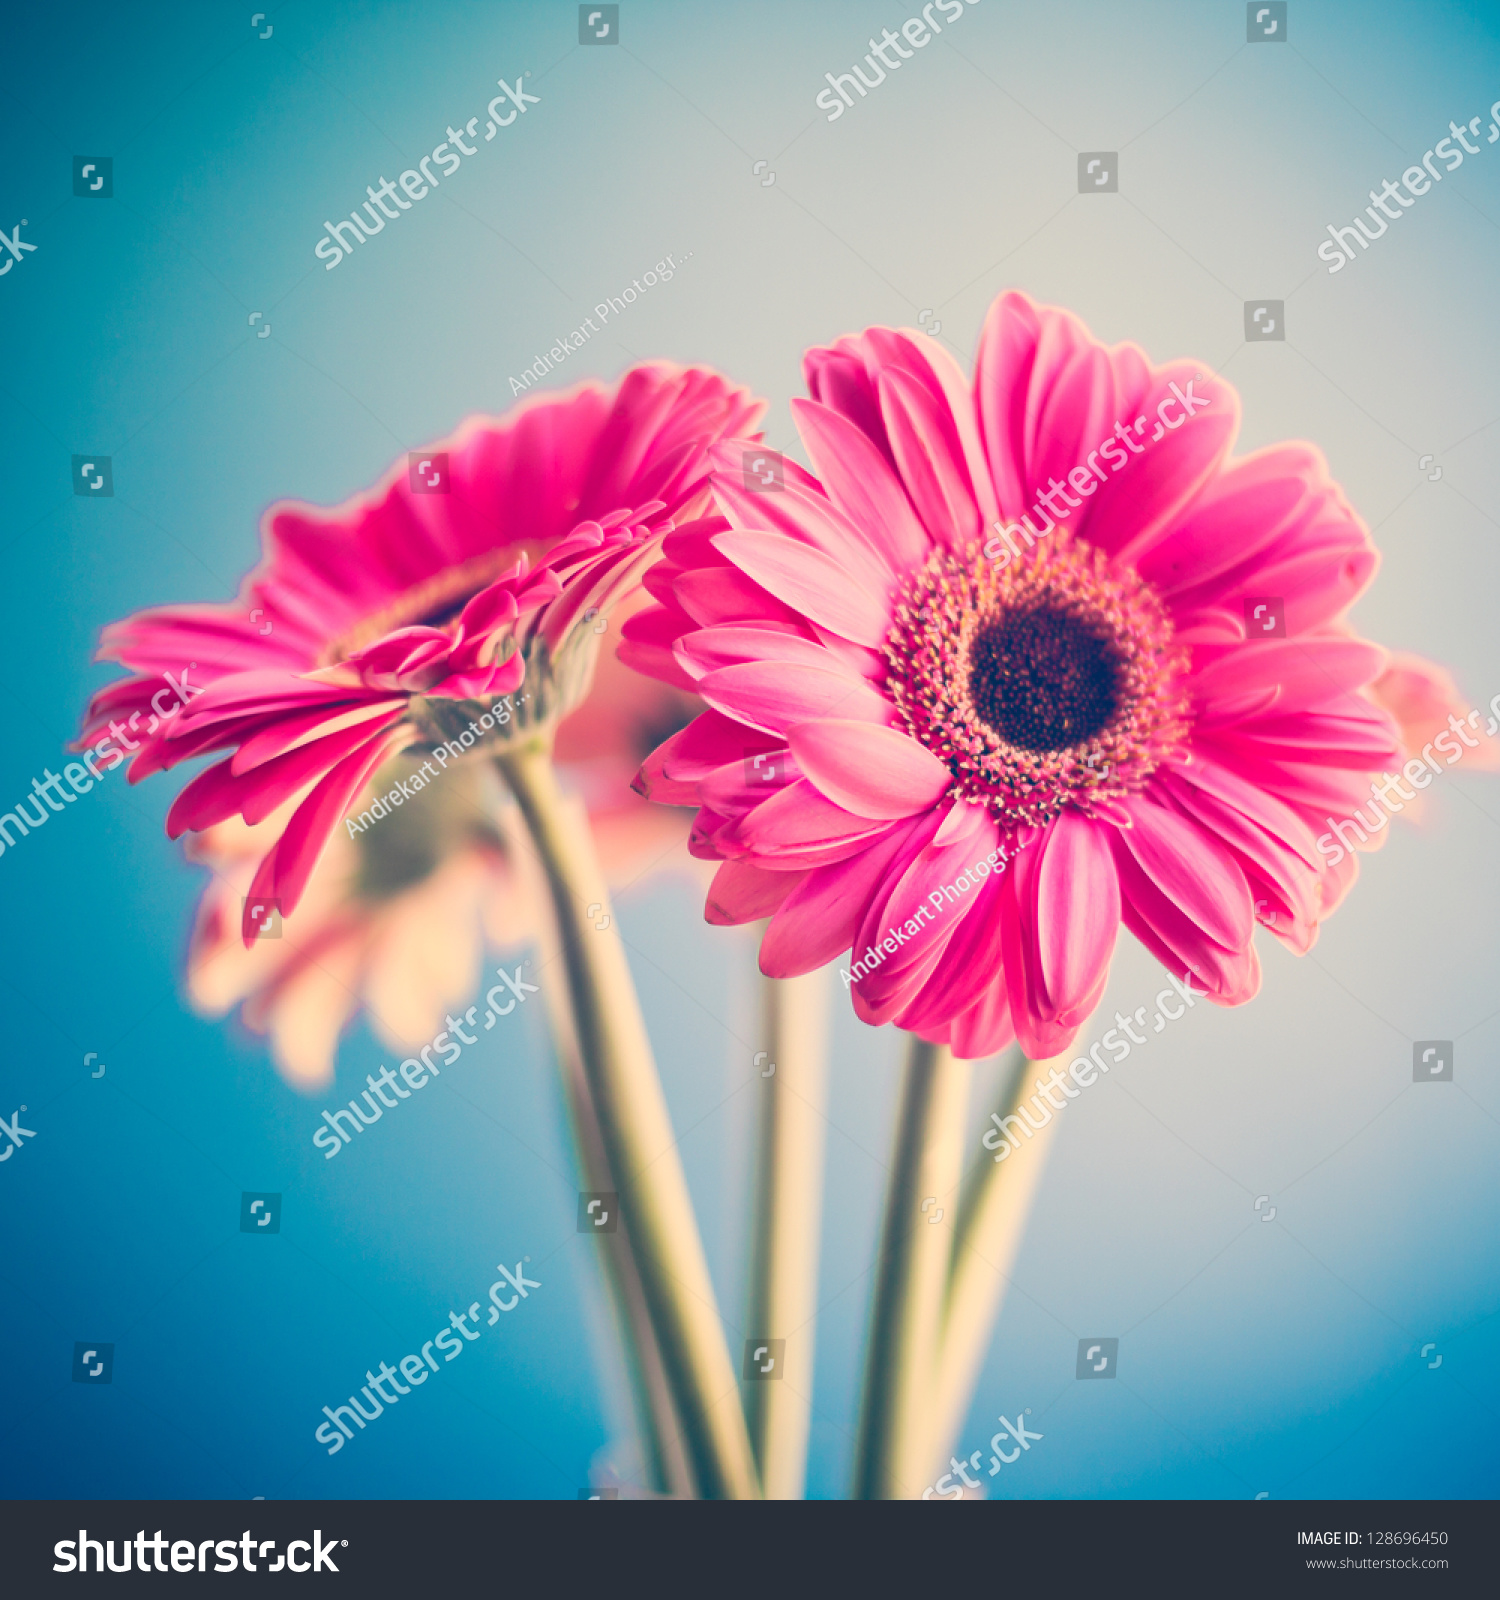 Two Pink Flowers Stock Photo Edit Now 128696450 Shutterstock